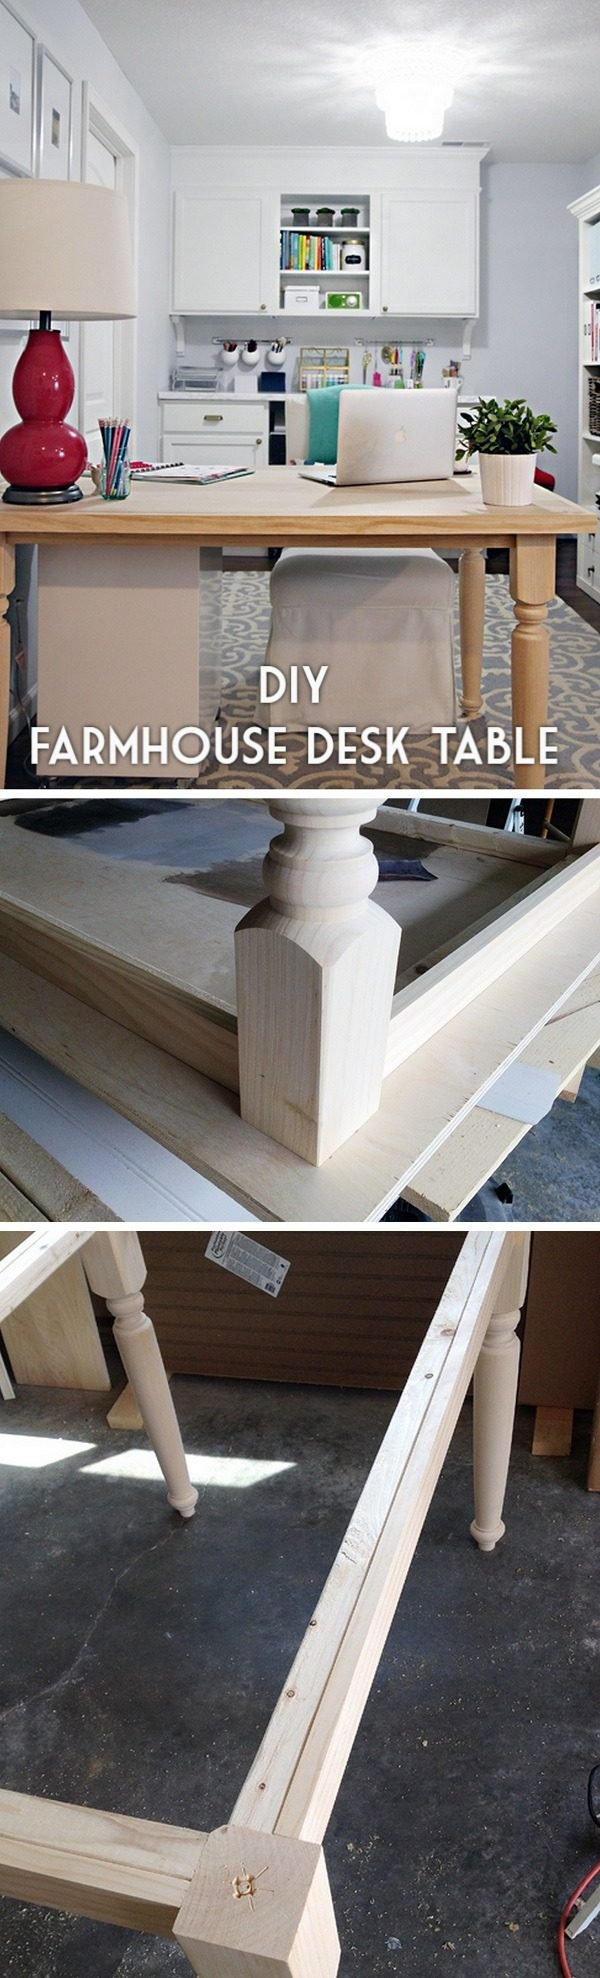 Check out the tutorial how to build a #DIY #farmhouse desk table #HomeDecorIdeas #RusticDecor